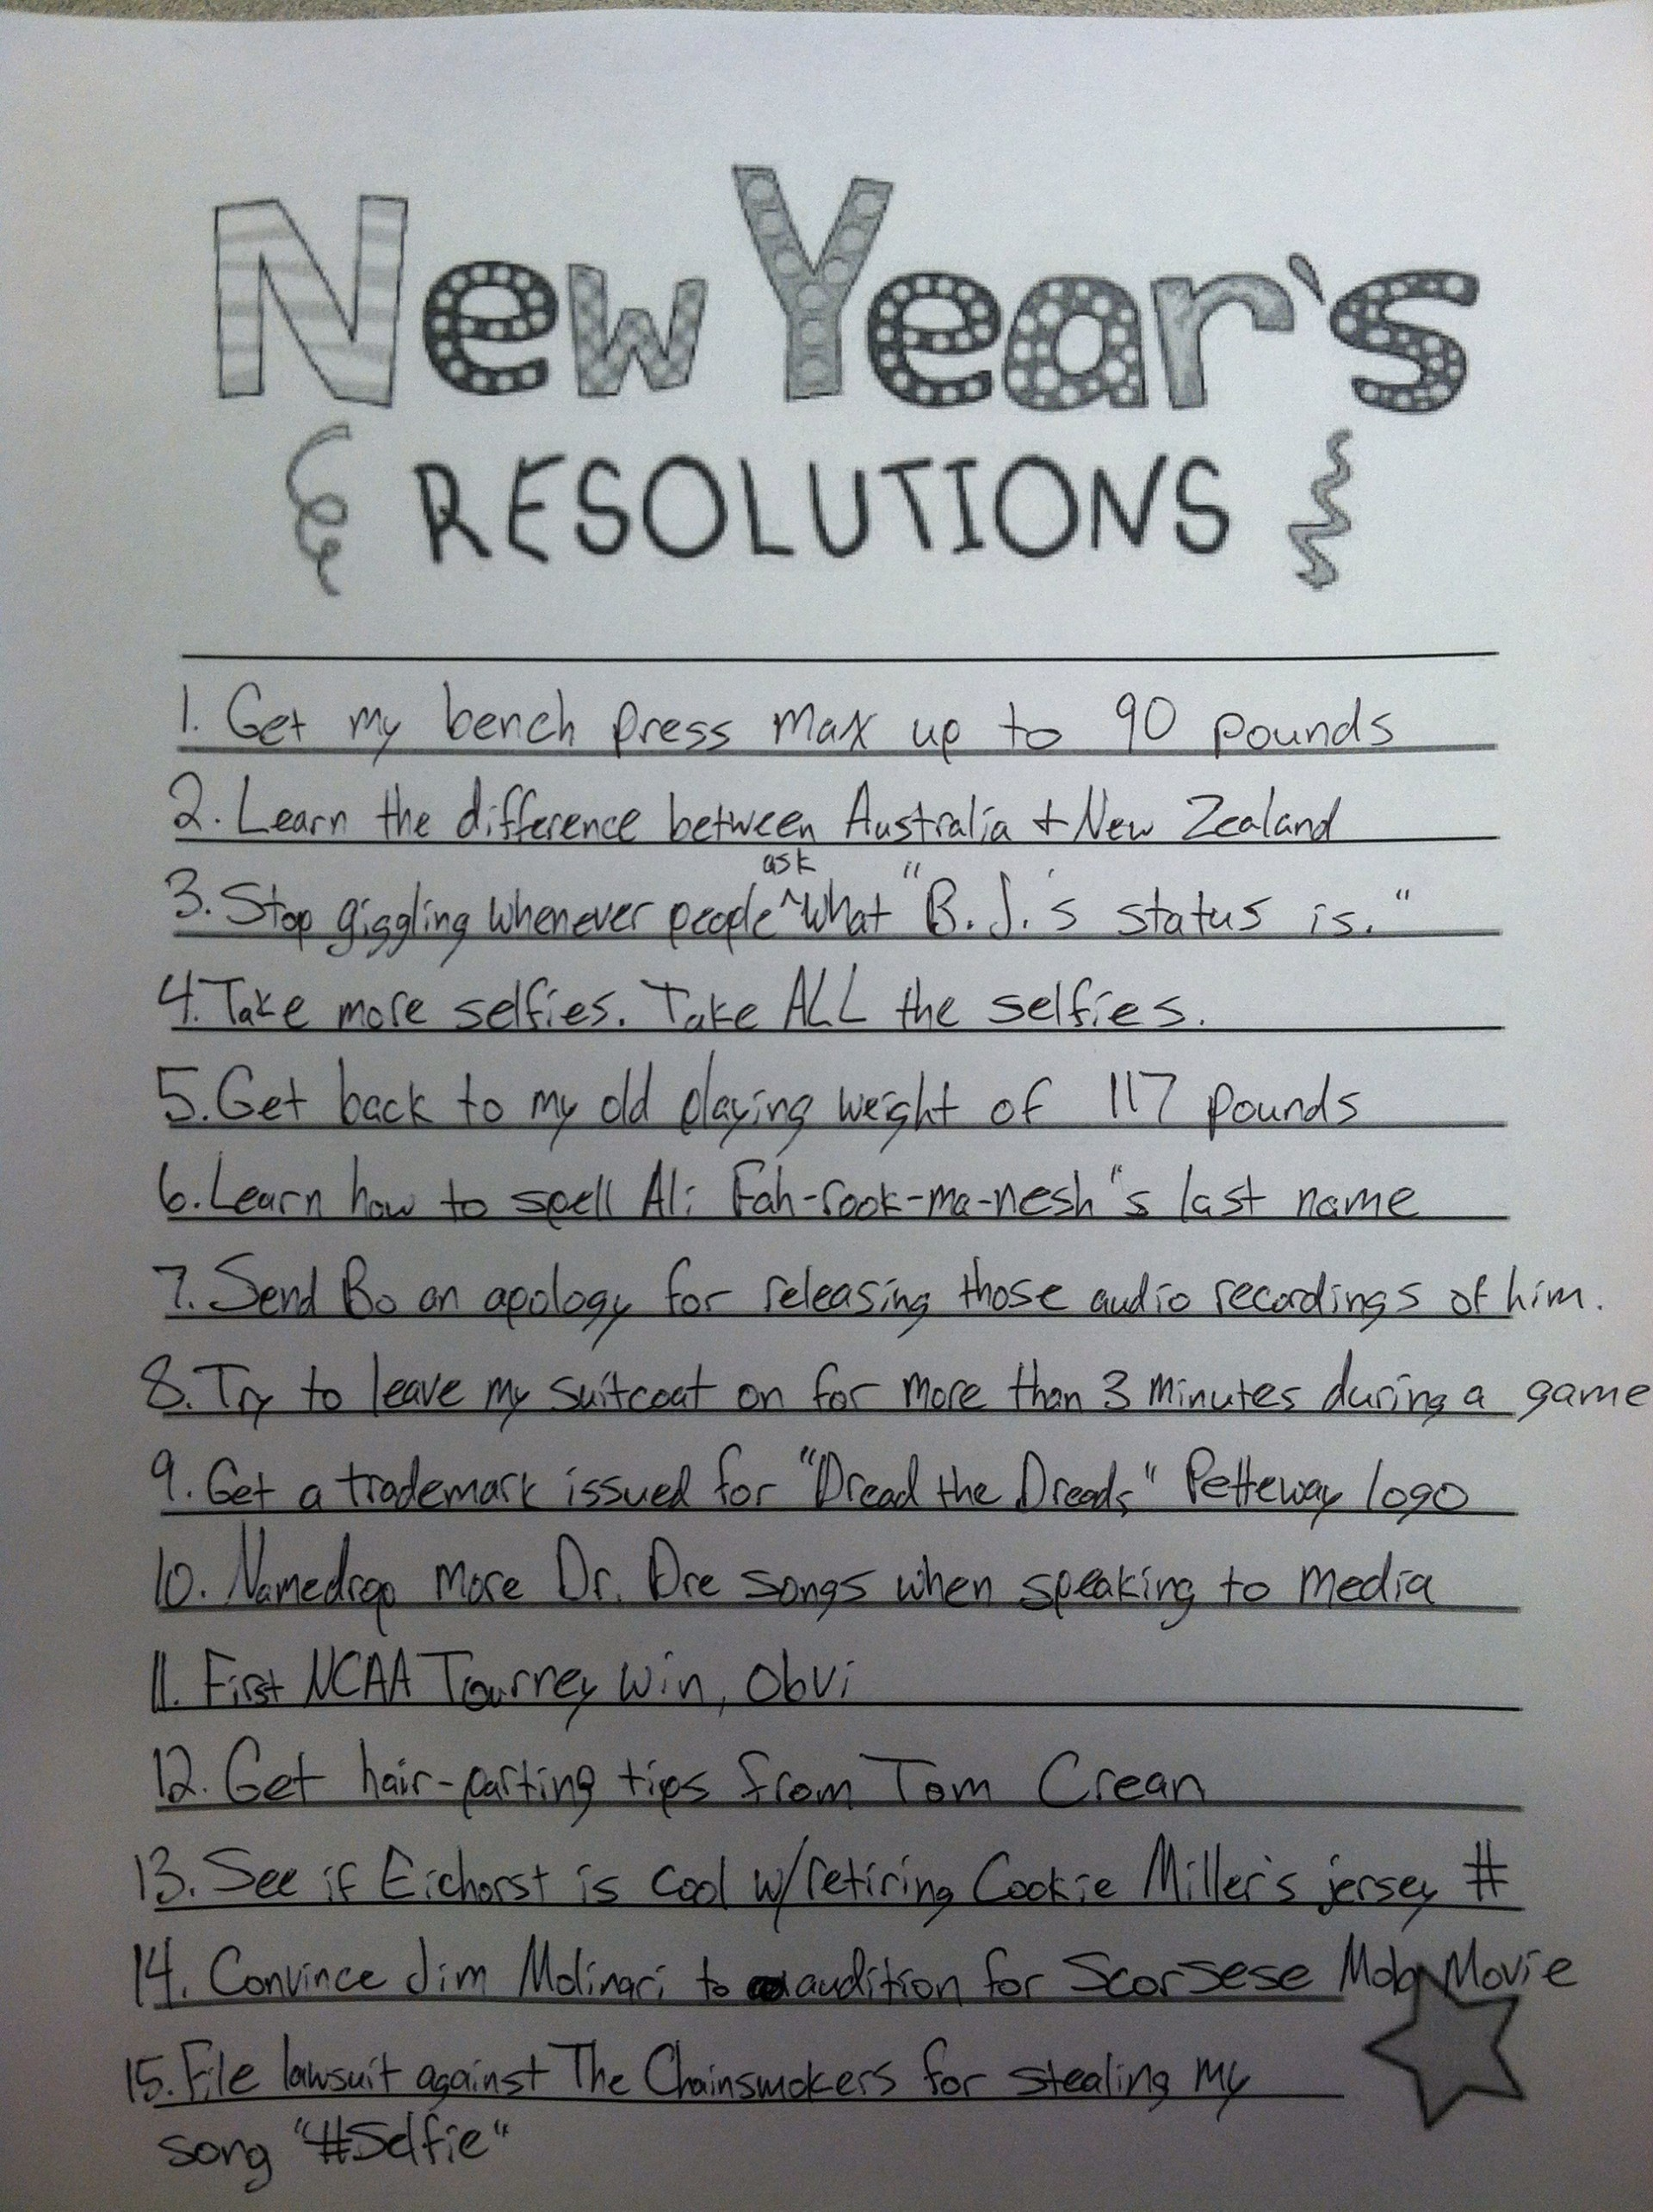 002 Img 40981 Essay Example My New Year Singular Resolution Student Tagalog In Hindi 1920